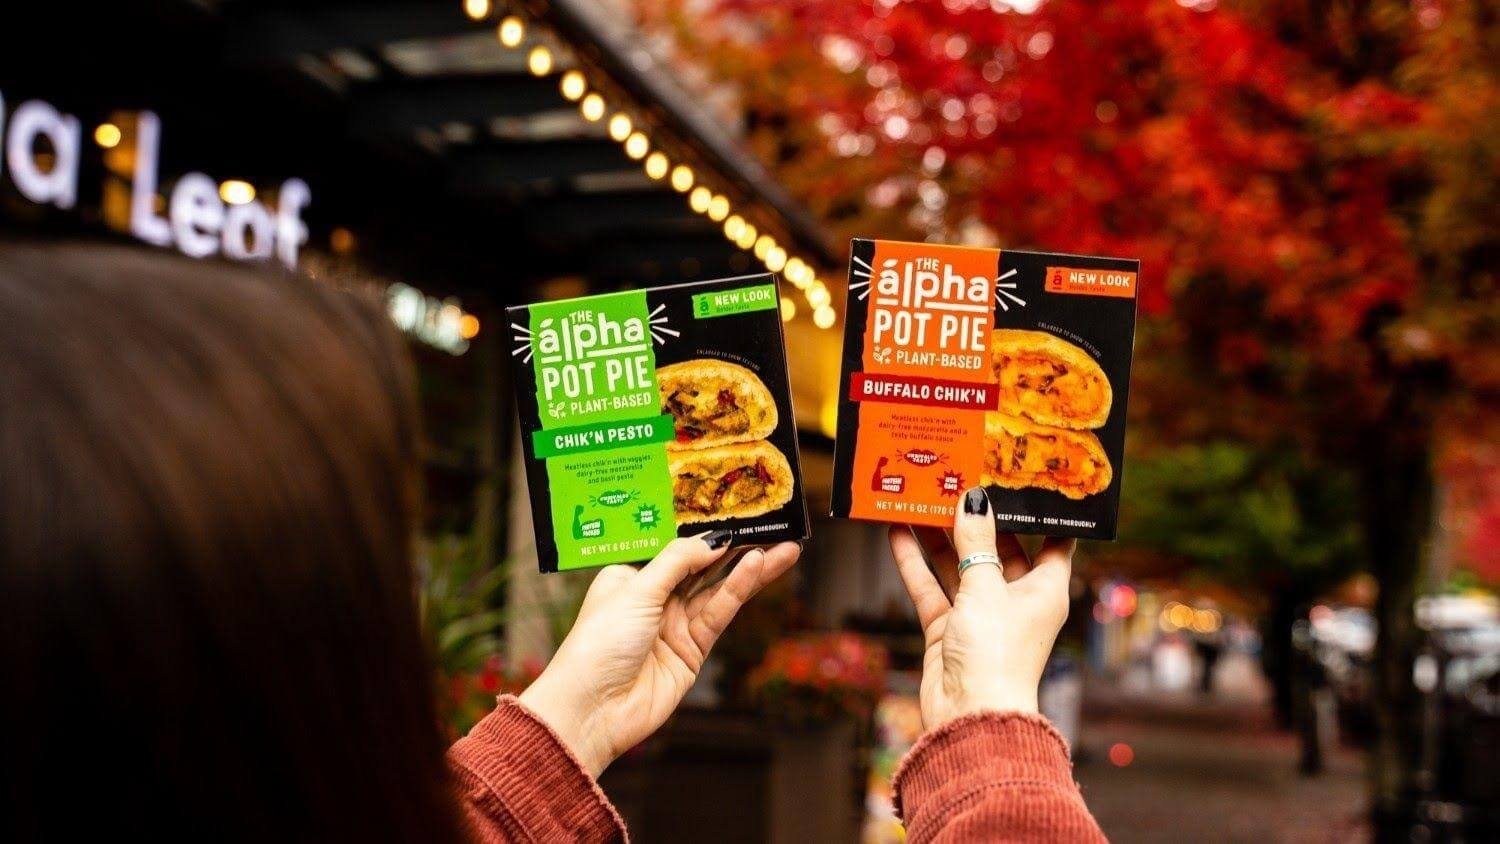 This Plant-Based Meat Brand Makes Food For Carnivores